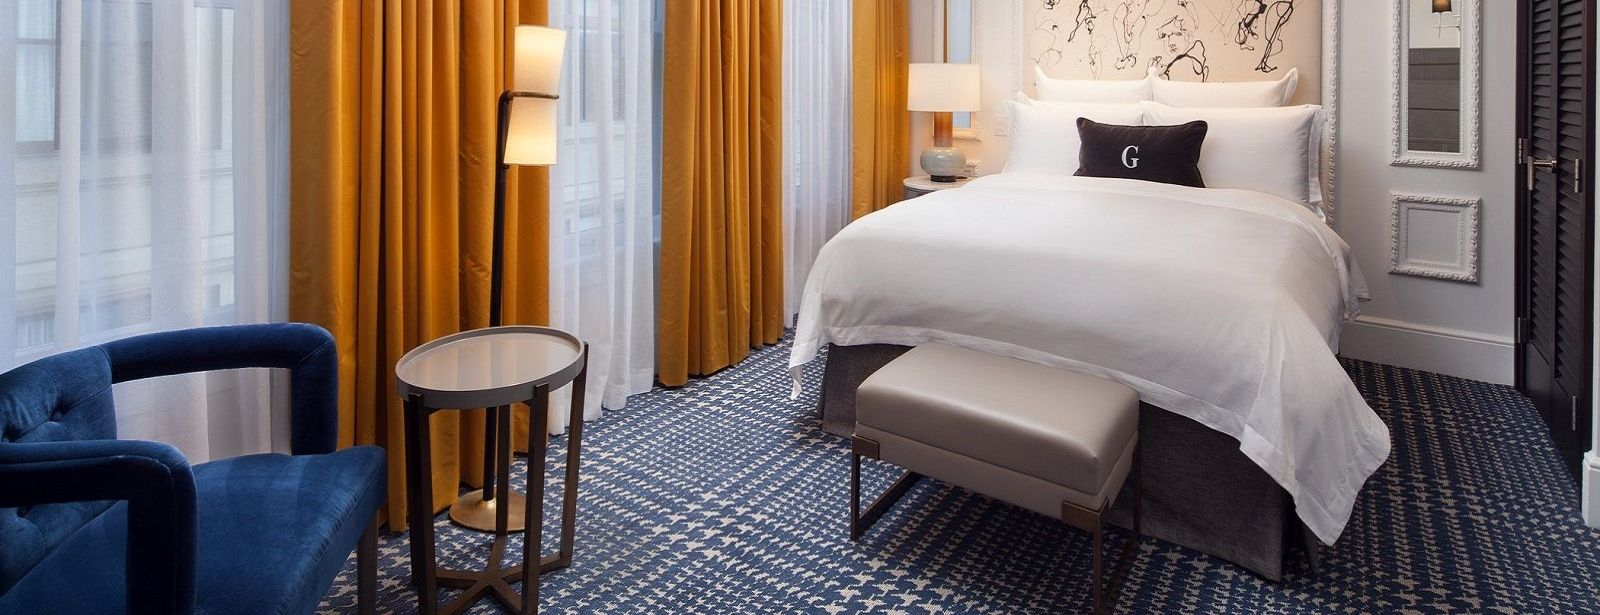 The US GRANT, A Luxury Collection Hotel, San Diego - Superior Guest Room